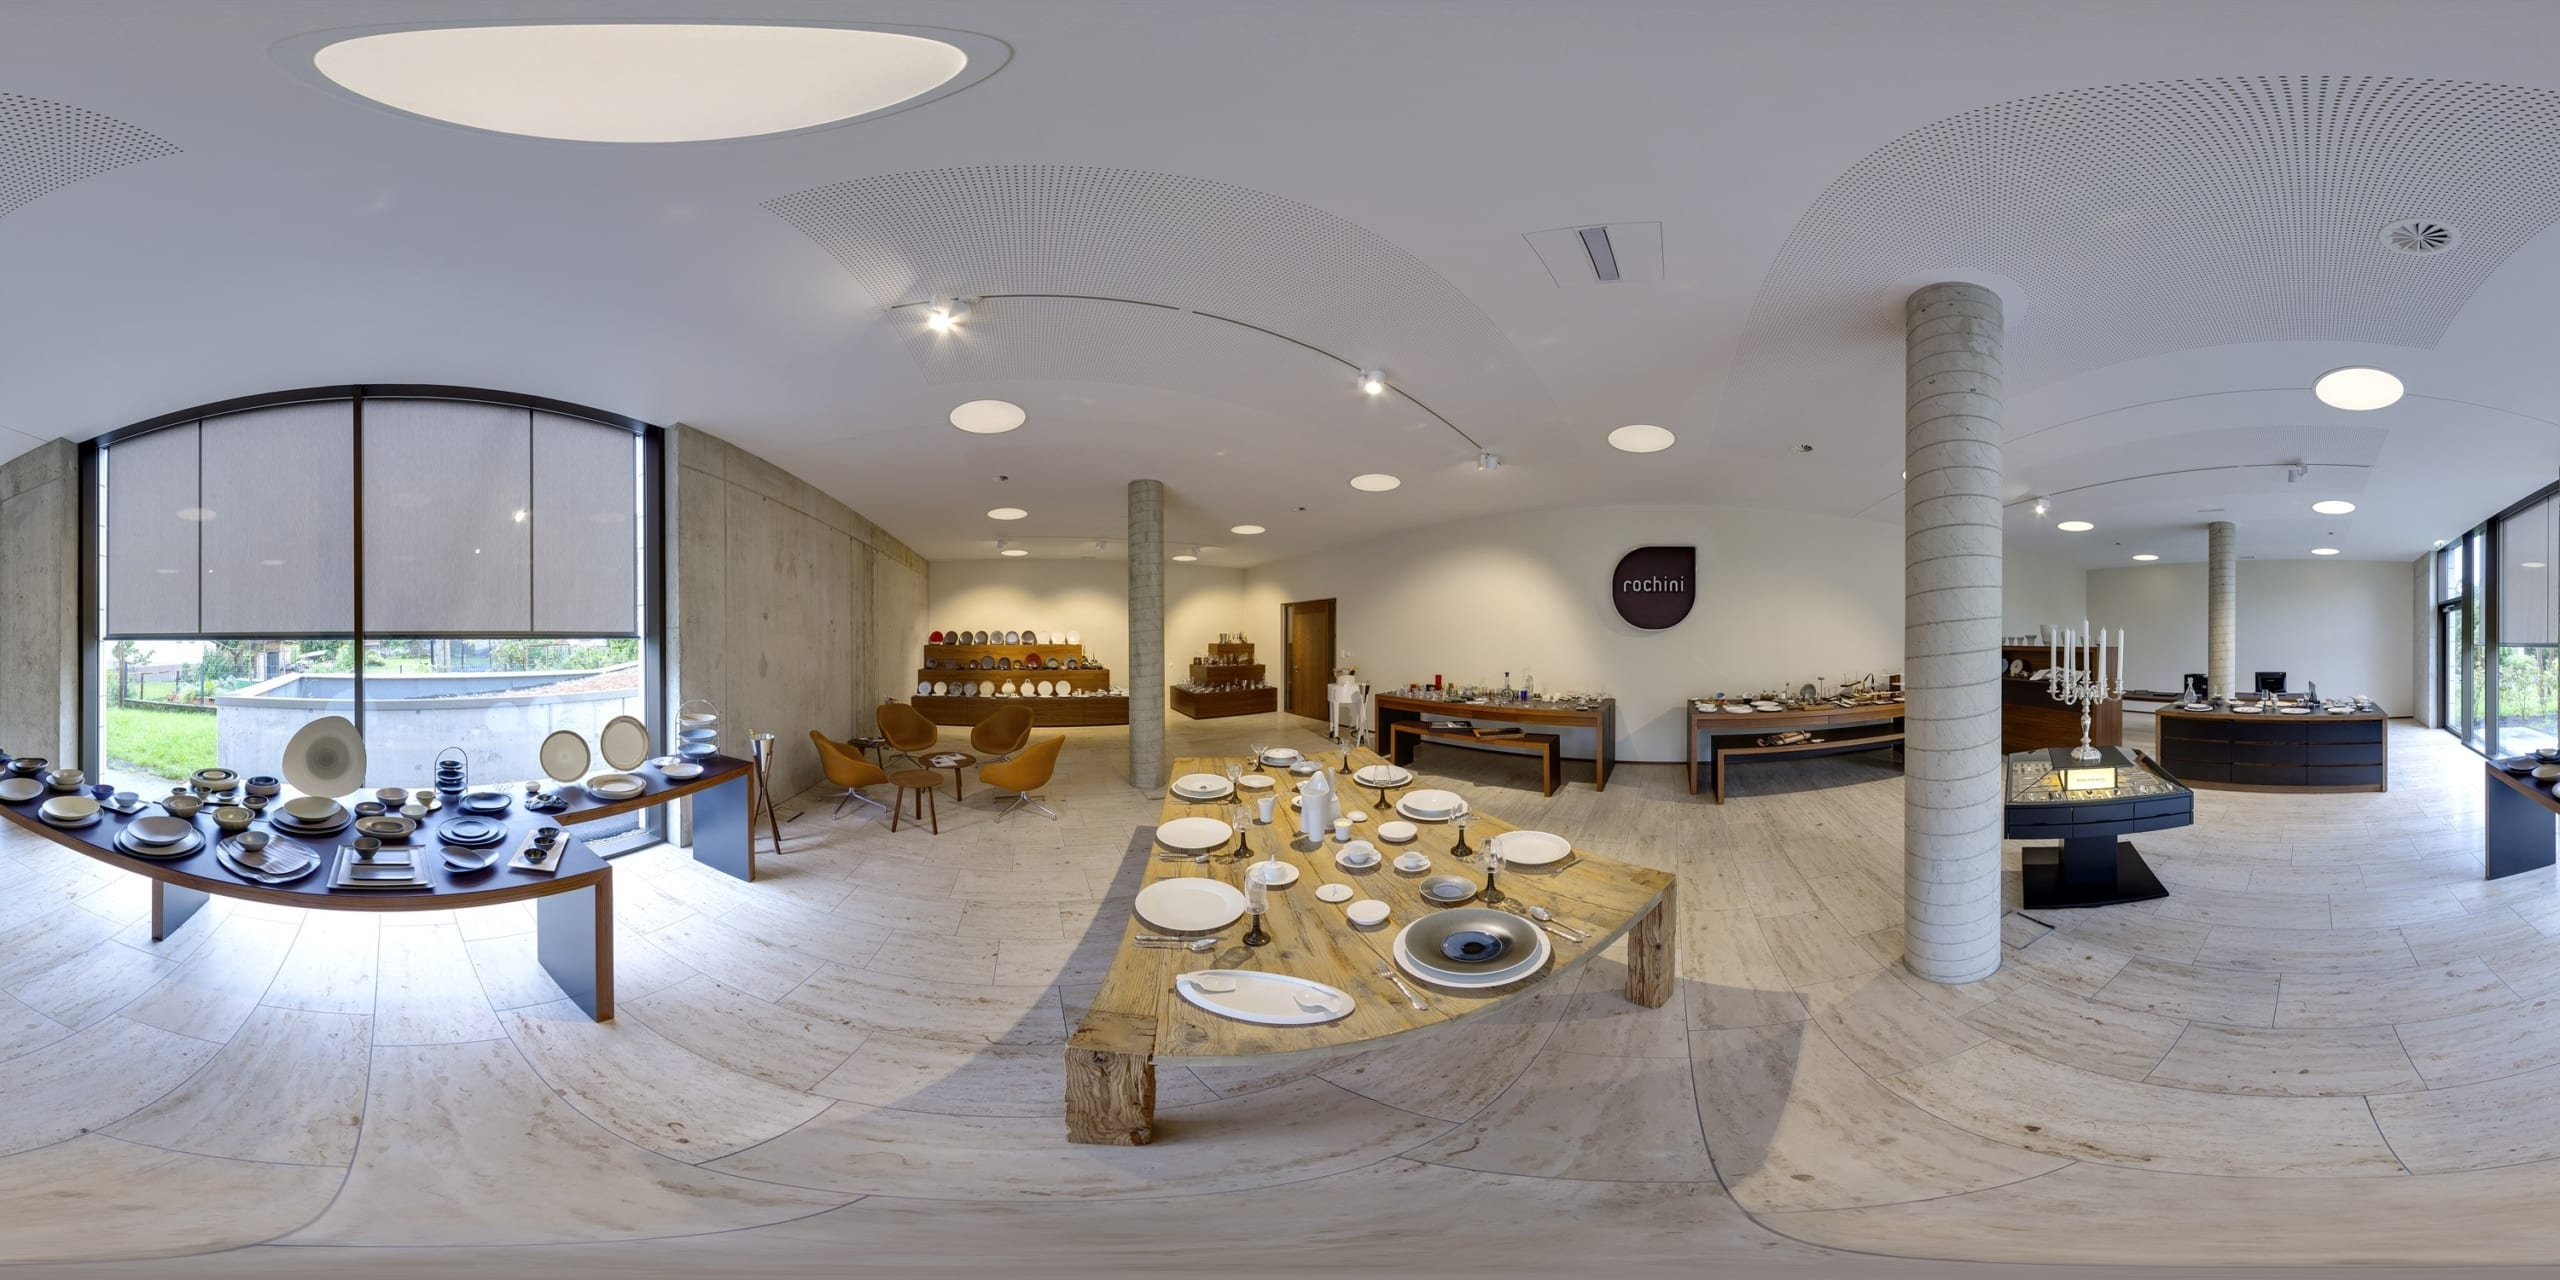 360 showroom scaled The Rochini family   we do everything for finest tabletop